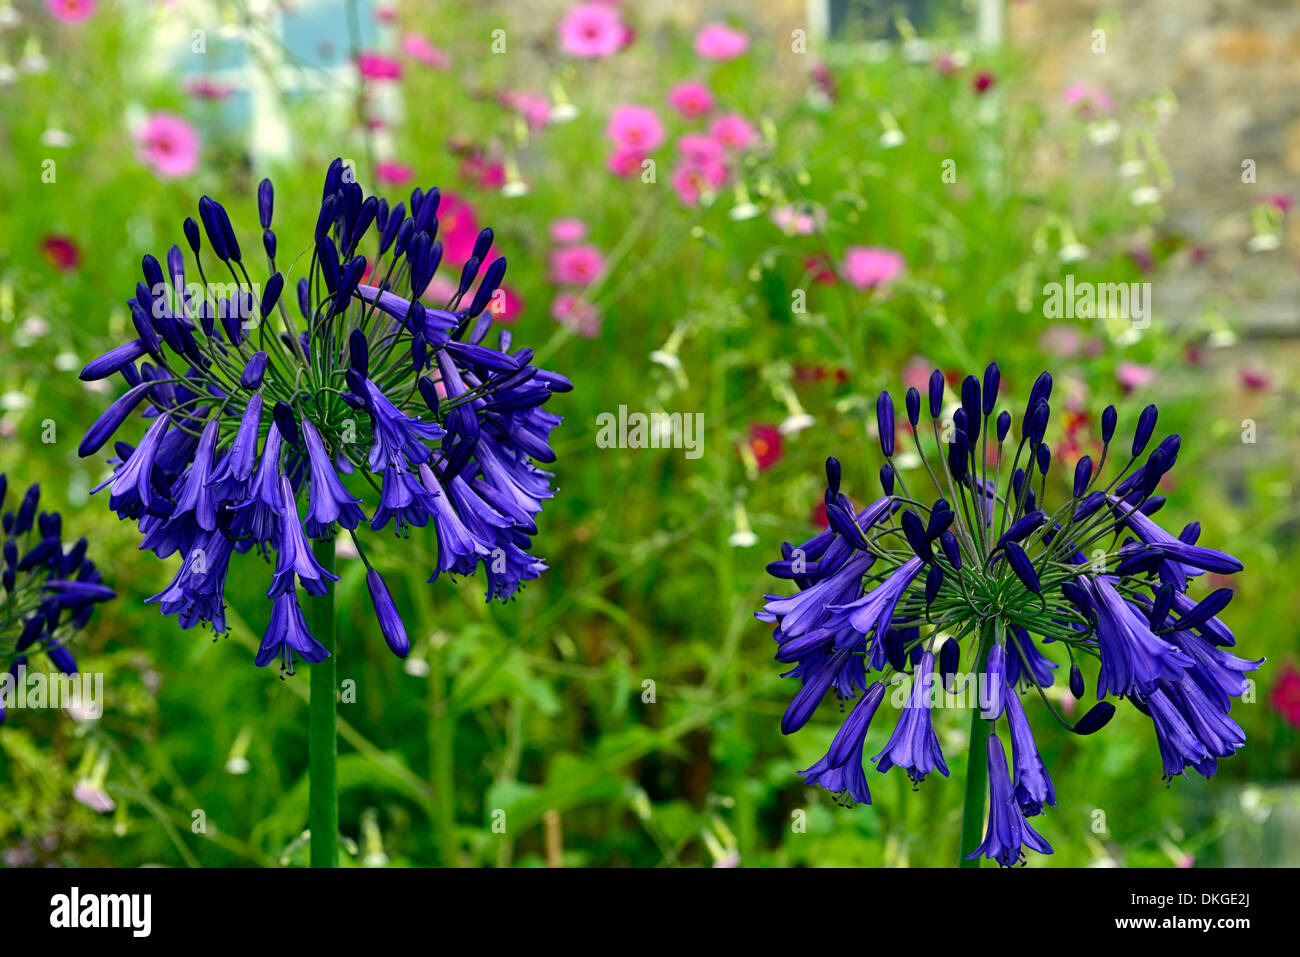 agapanthus africanus Purple Cloud african lily plant portraits flowers flowering perennials purple blue bloom blooming - Stock Image